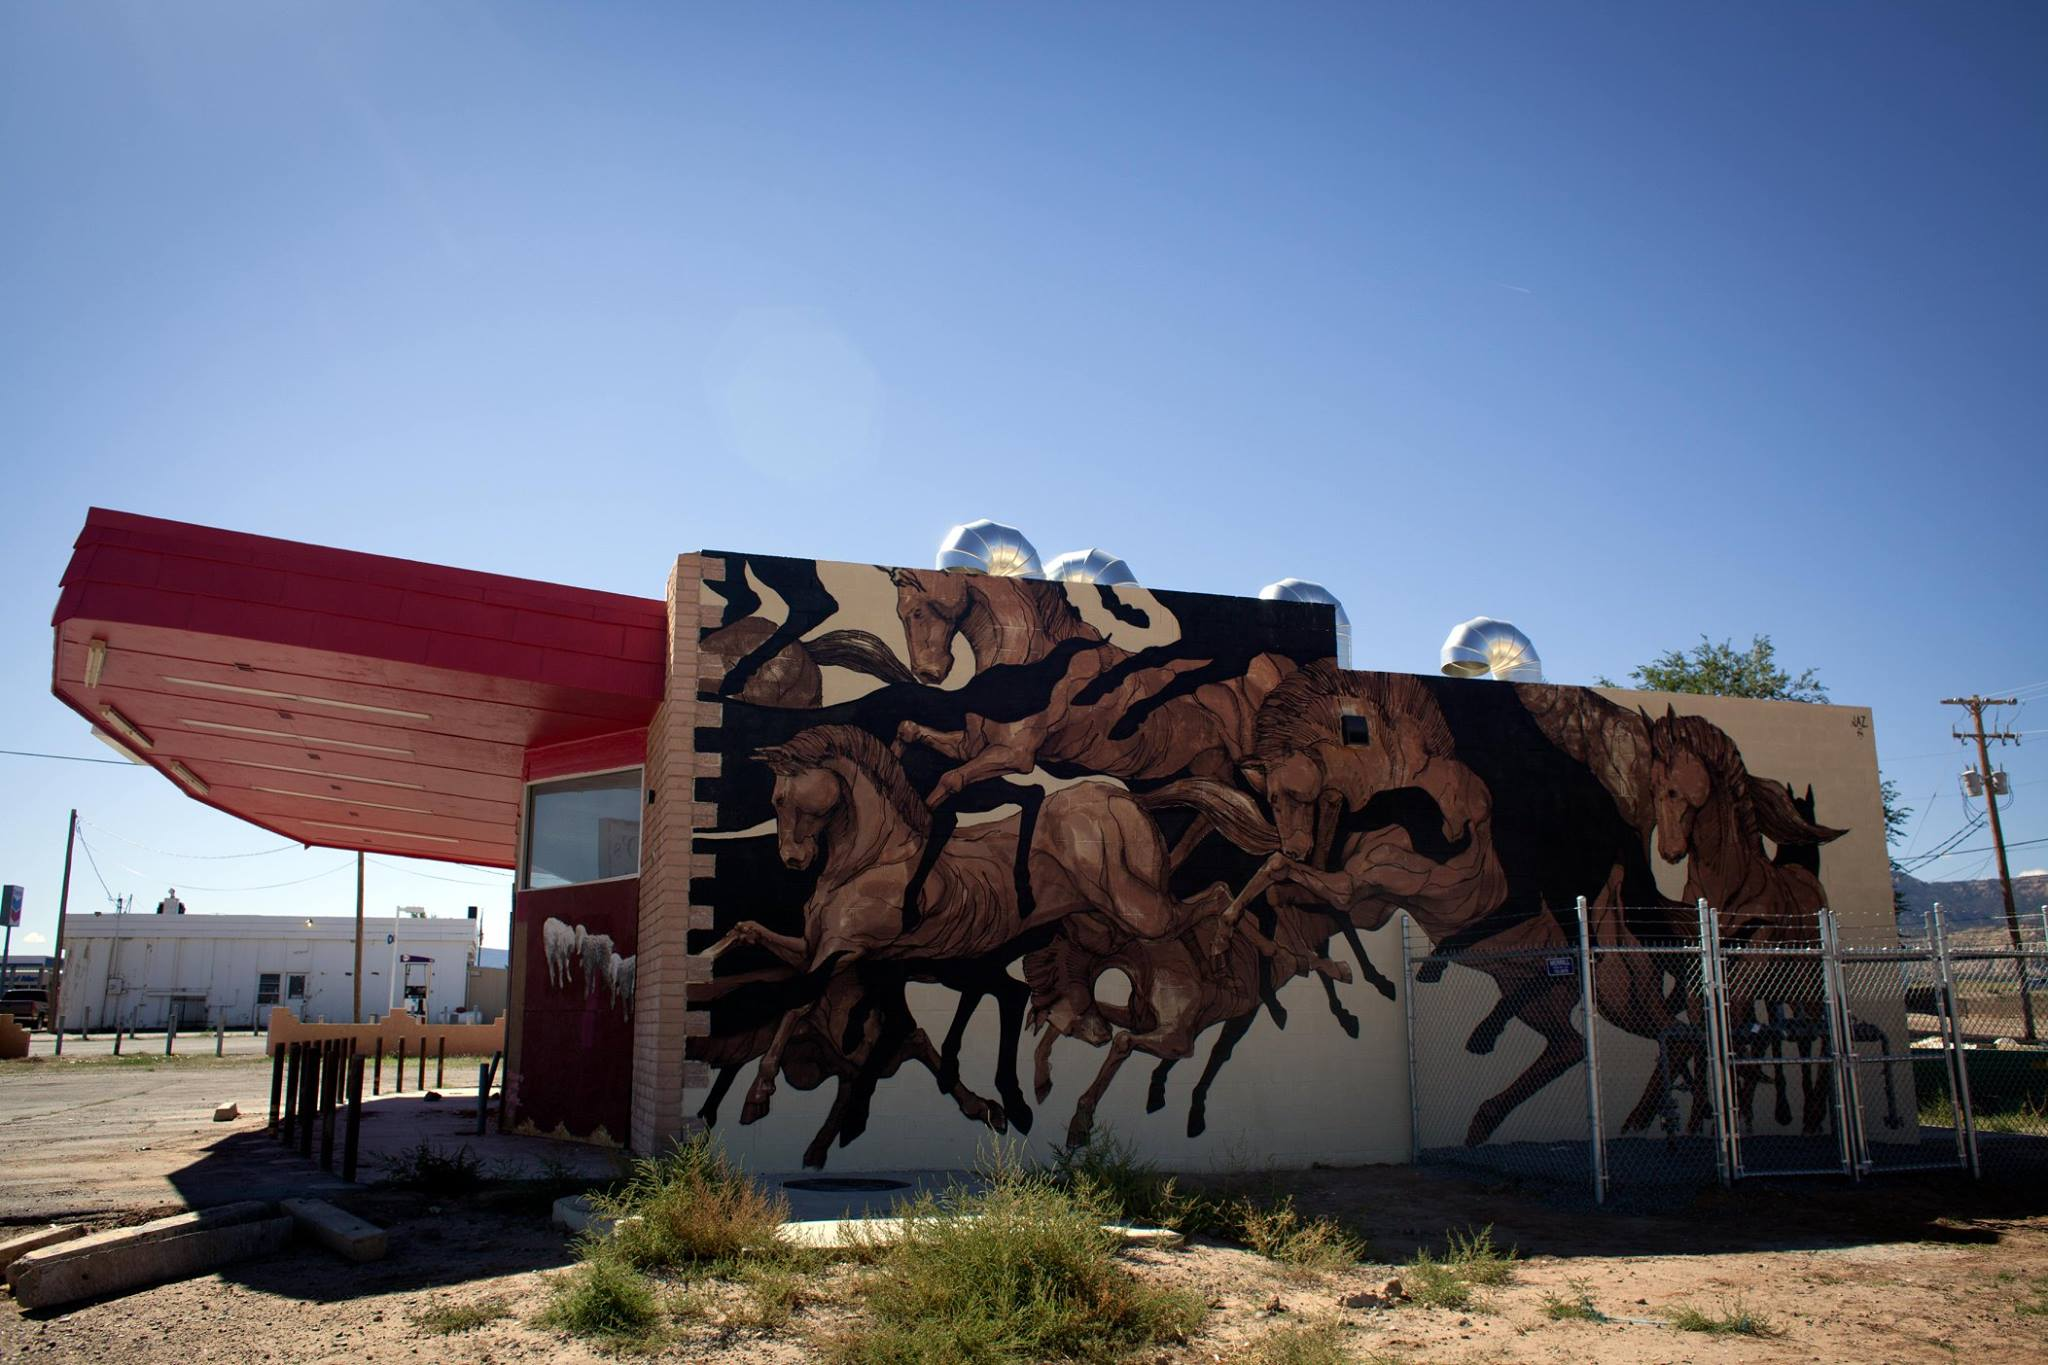 Jaz for The Painted Desert Project in Arizona.